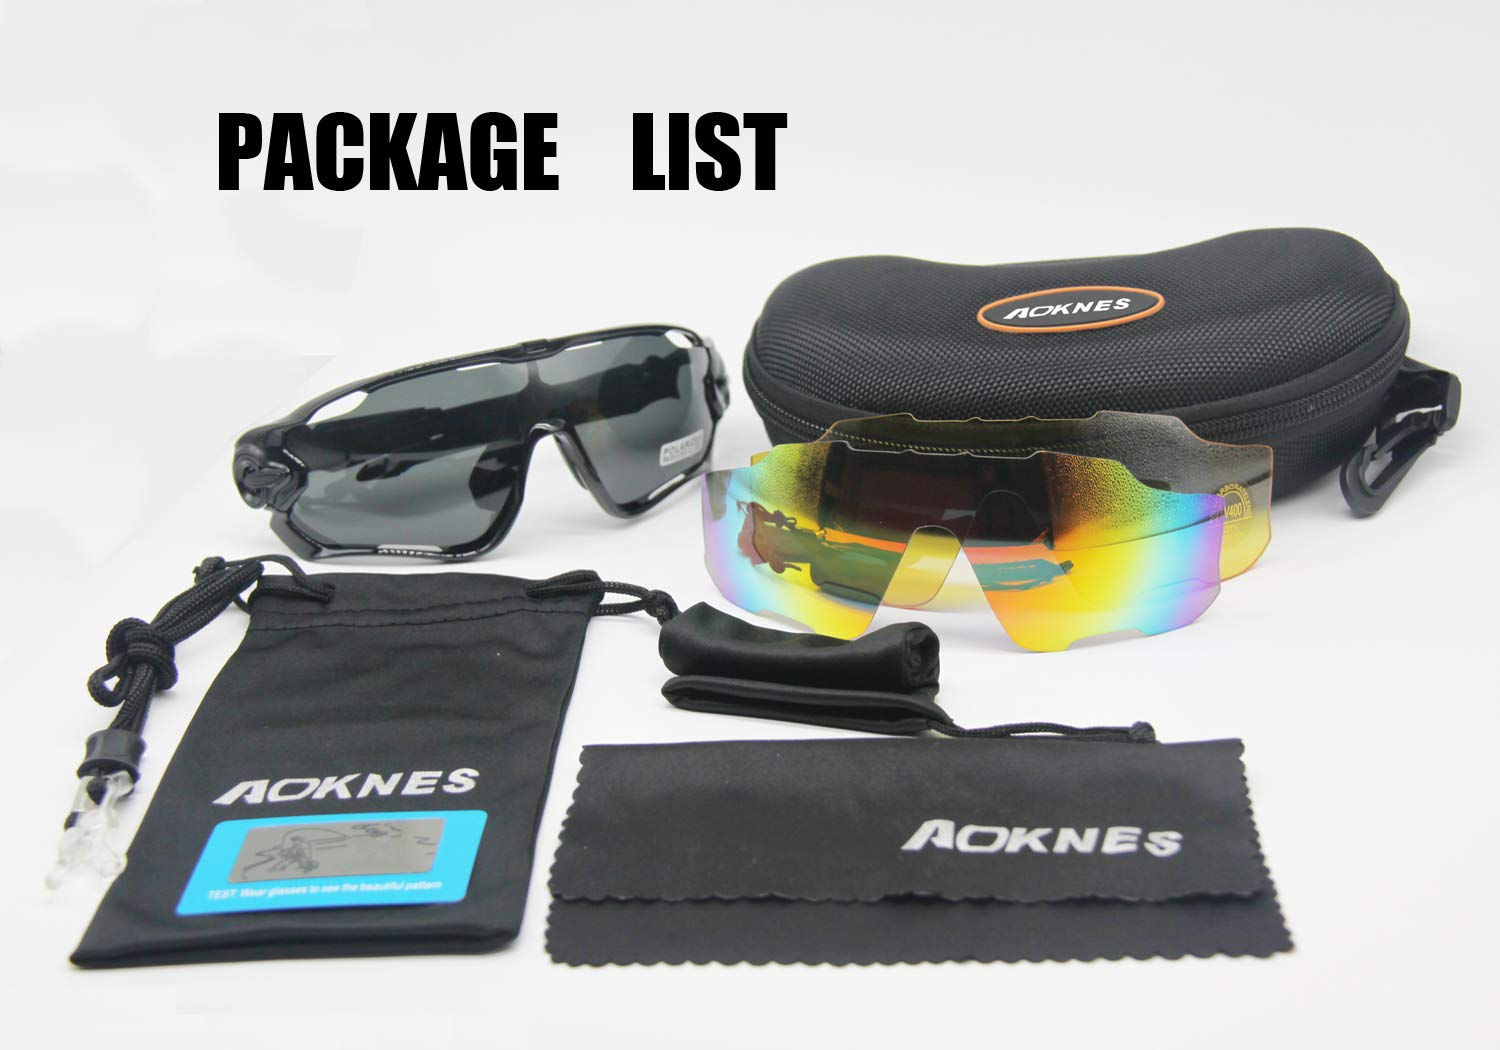 AOKNES Polarized Sports Cycling Glasses Goggles for Men Women with 3 Interchangeable Lenses